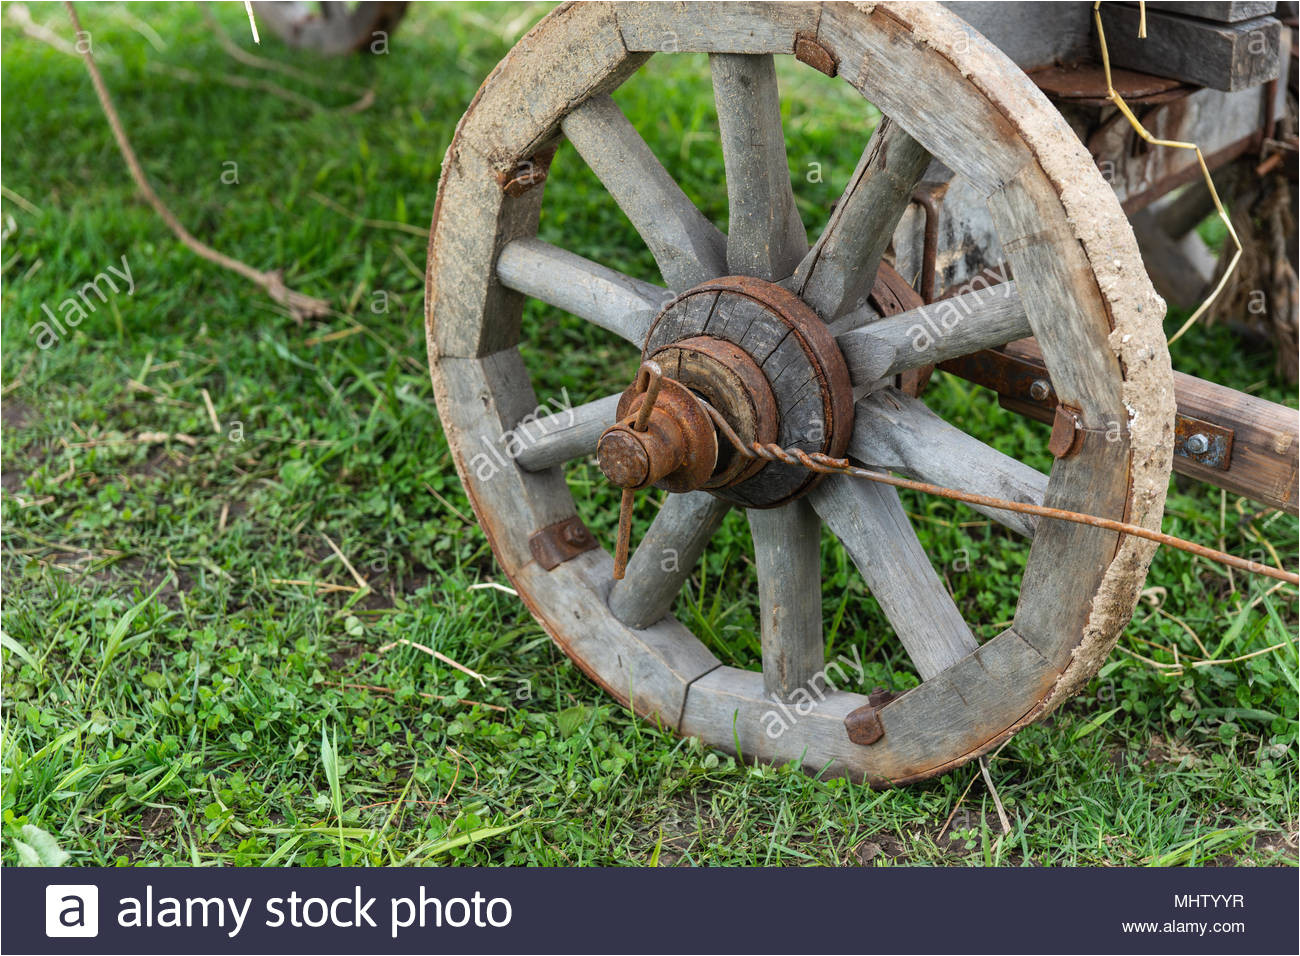 wooden wheel of an ancient cart on a ground covered with green grass rusty metal